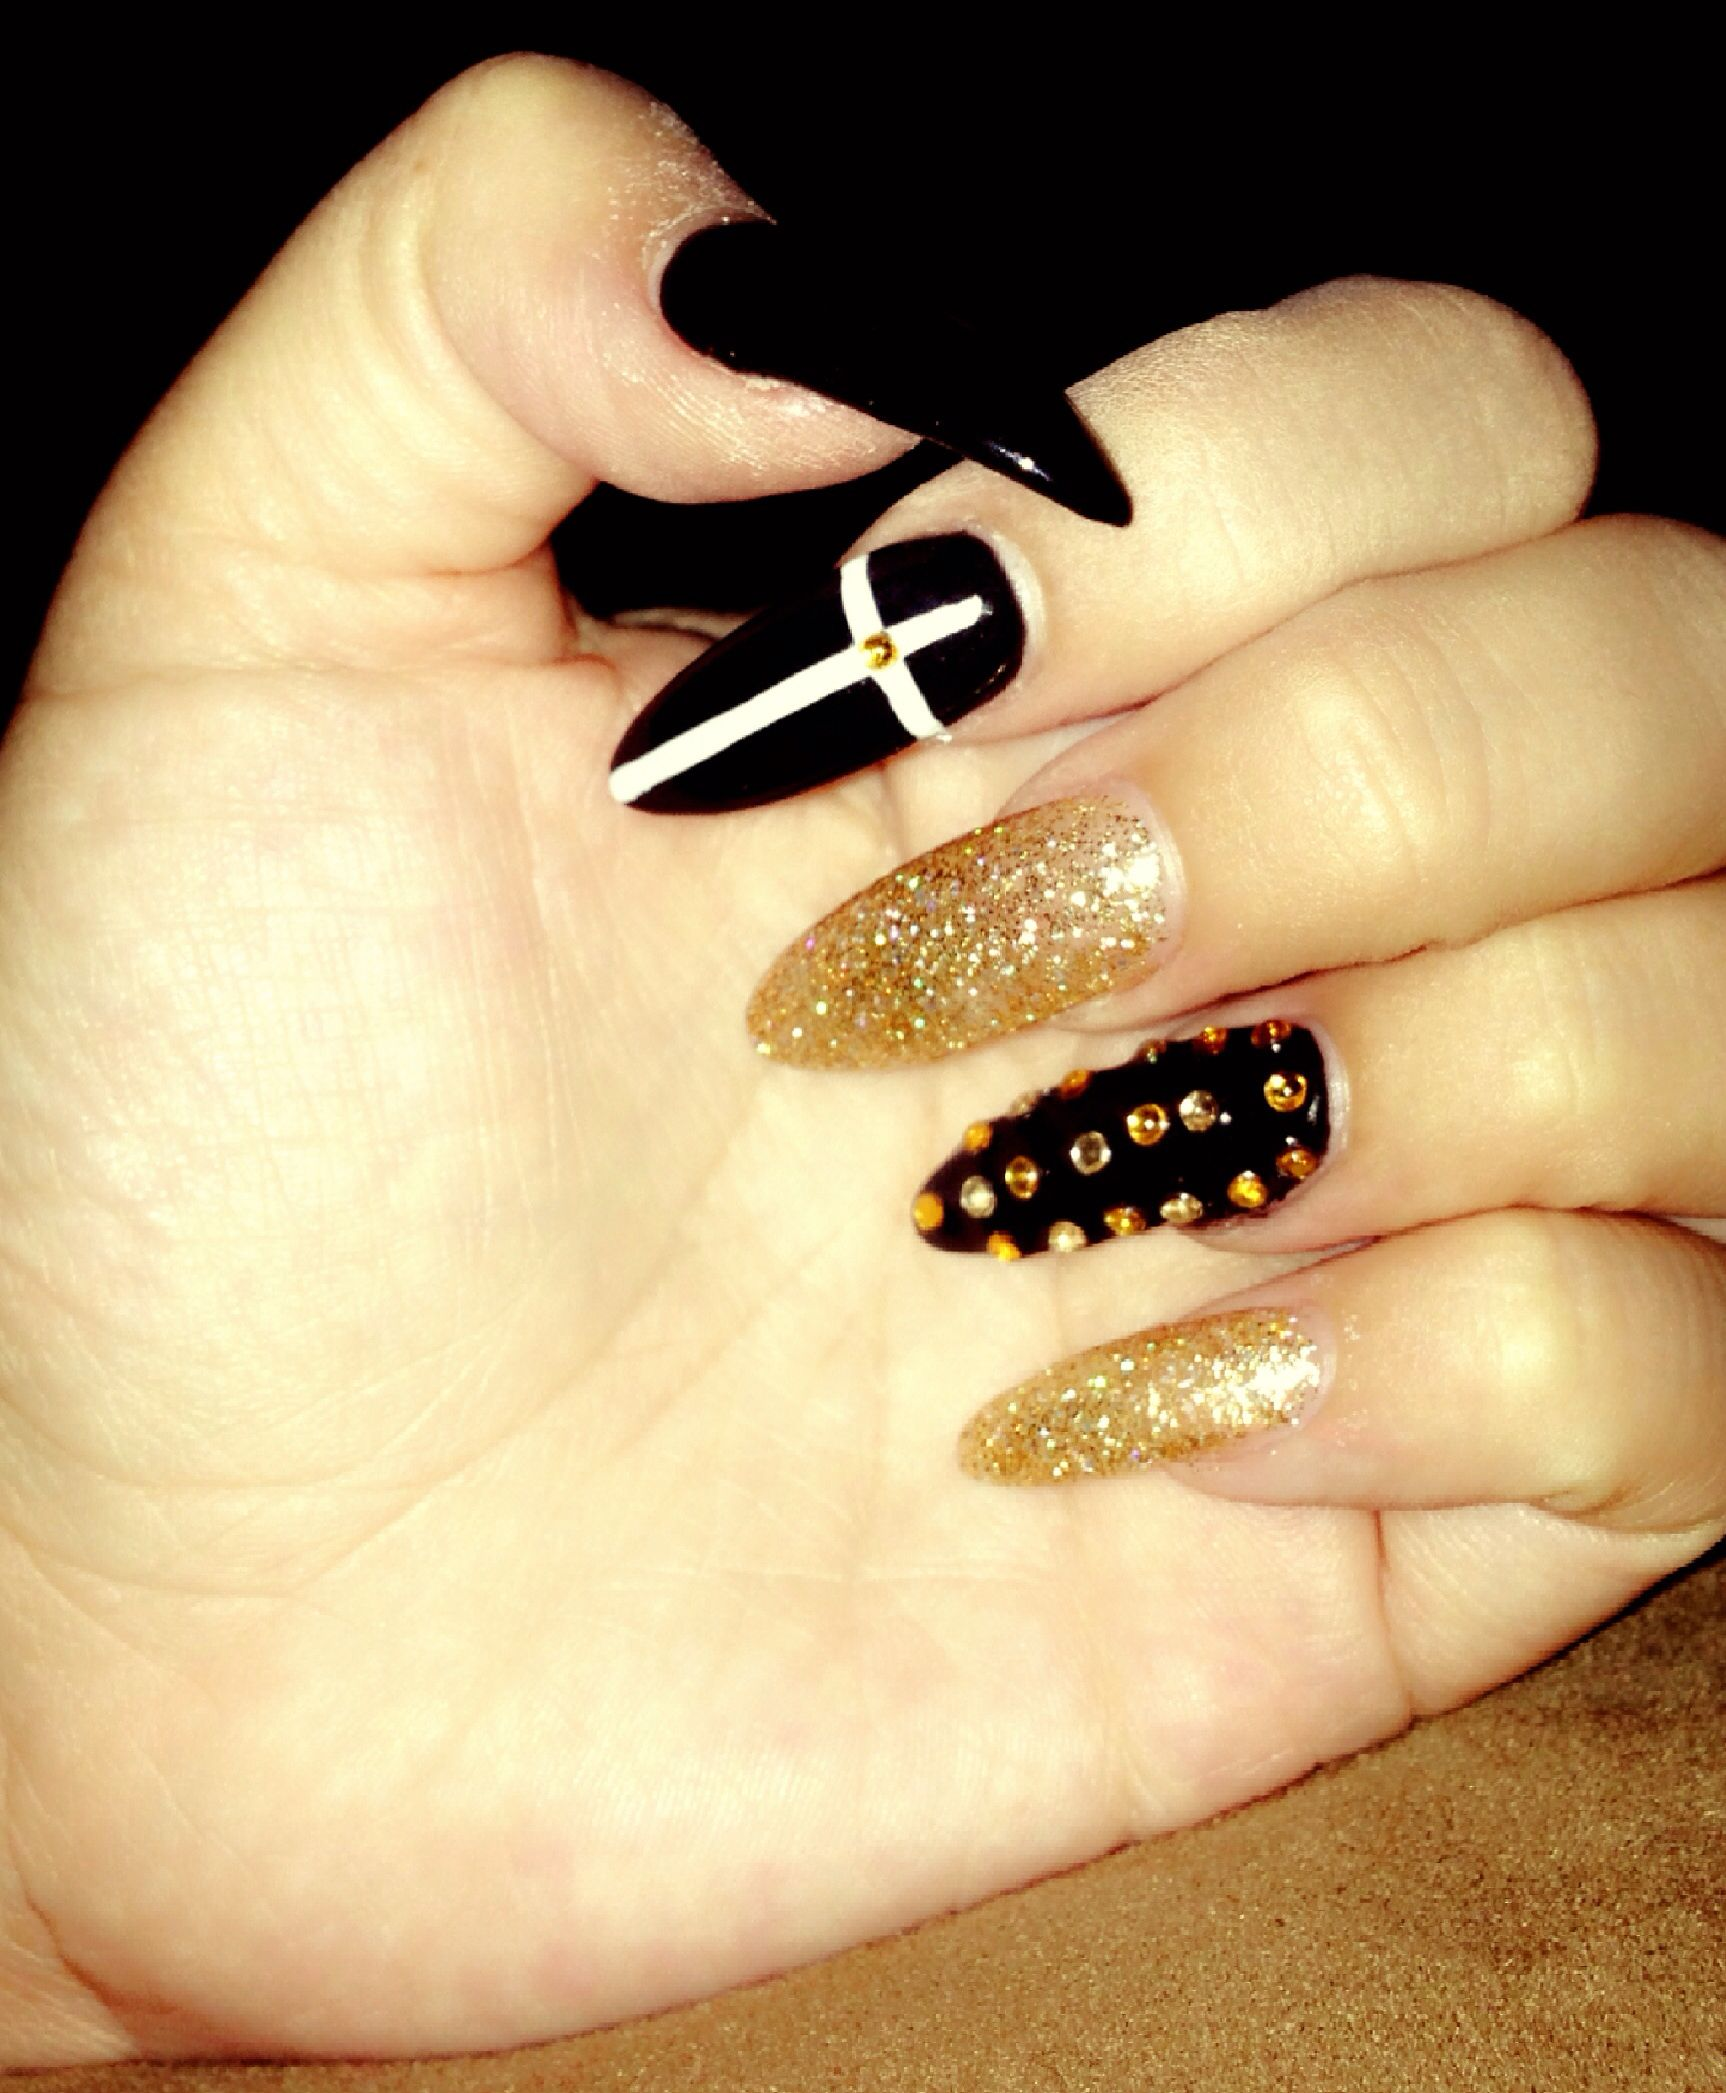 Acrylic Nails With Blackglitter Gold Gel Polish Pointed Tip Rhinestone White Cross Design You Like Done At Cool In Cerritos